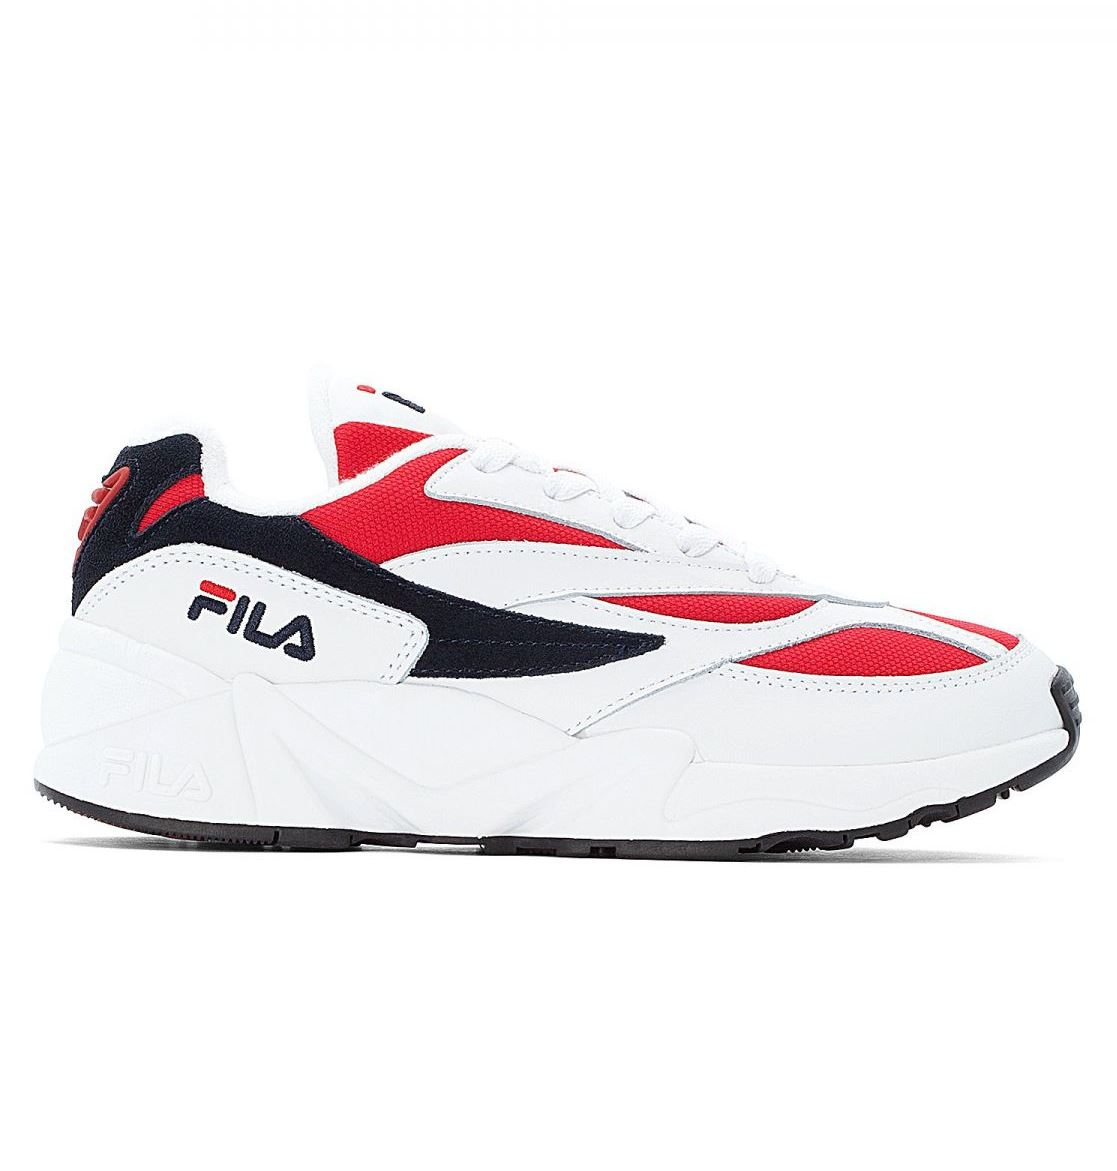 FILA The Athlete's Foot